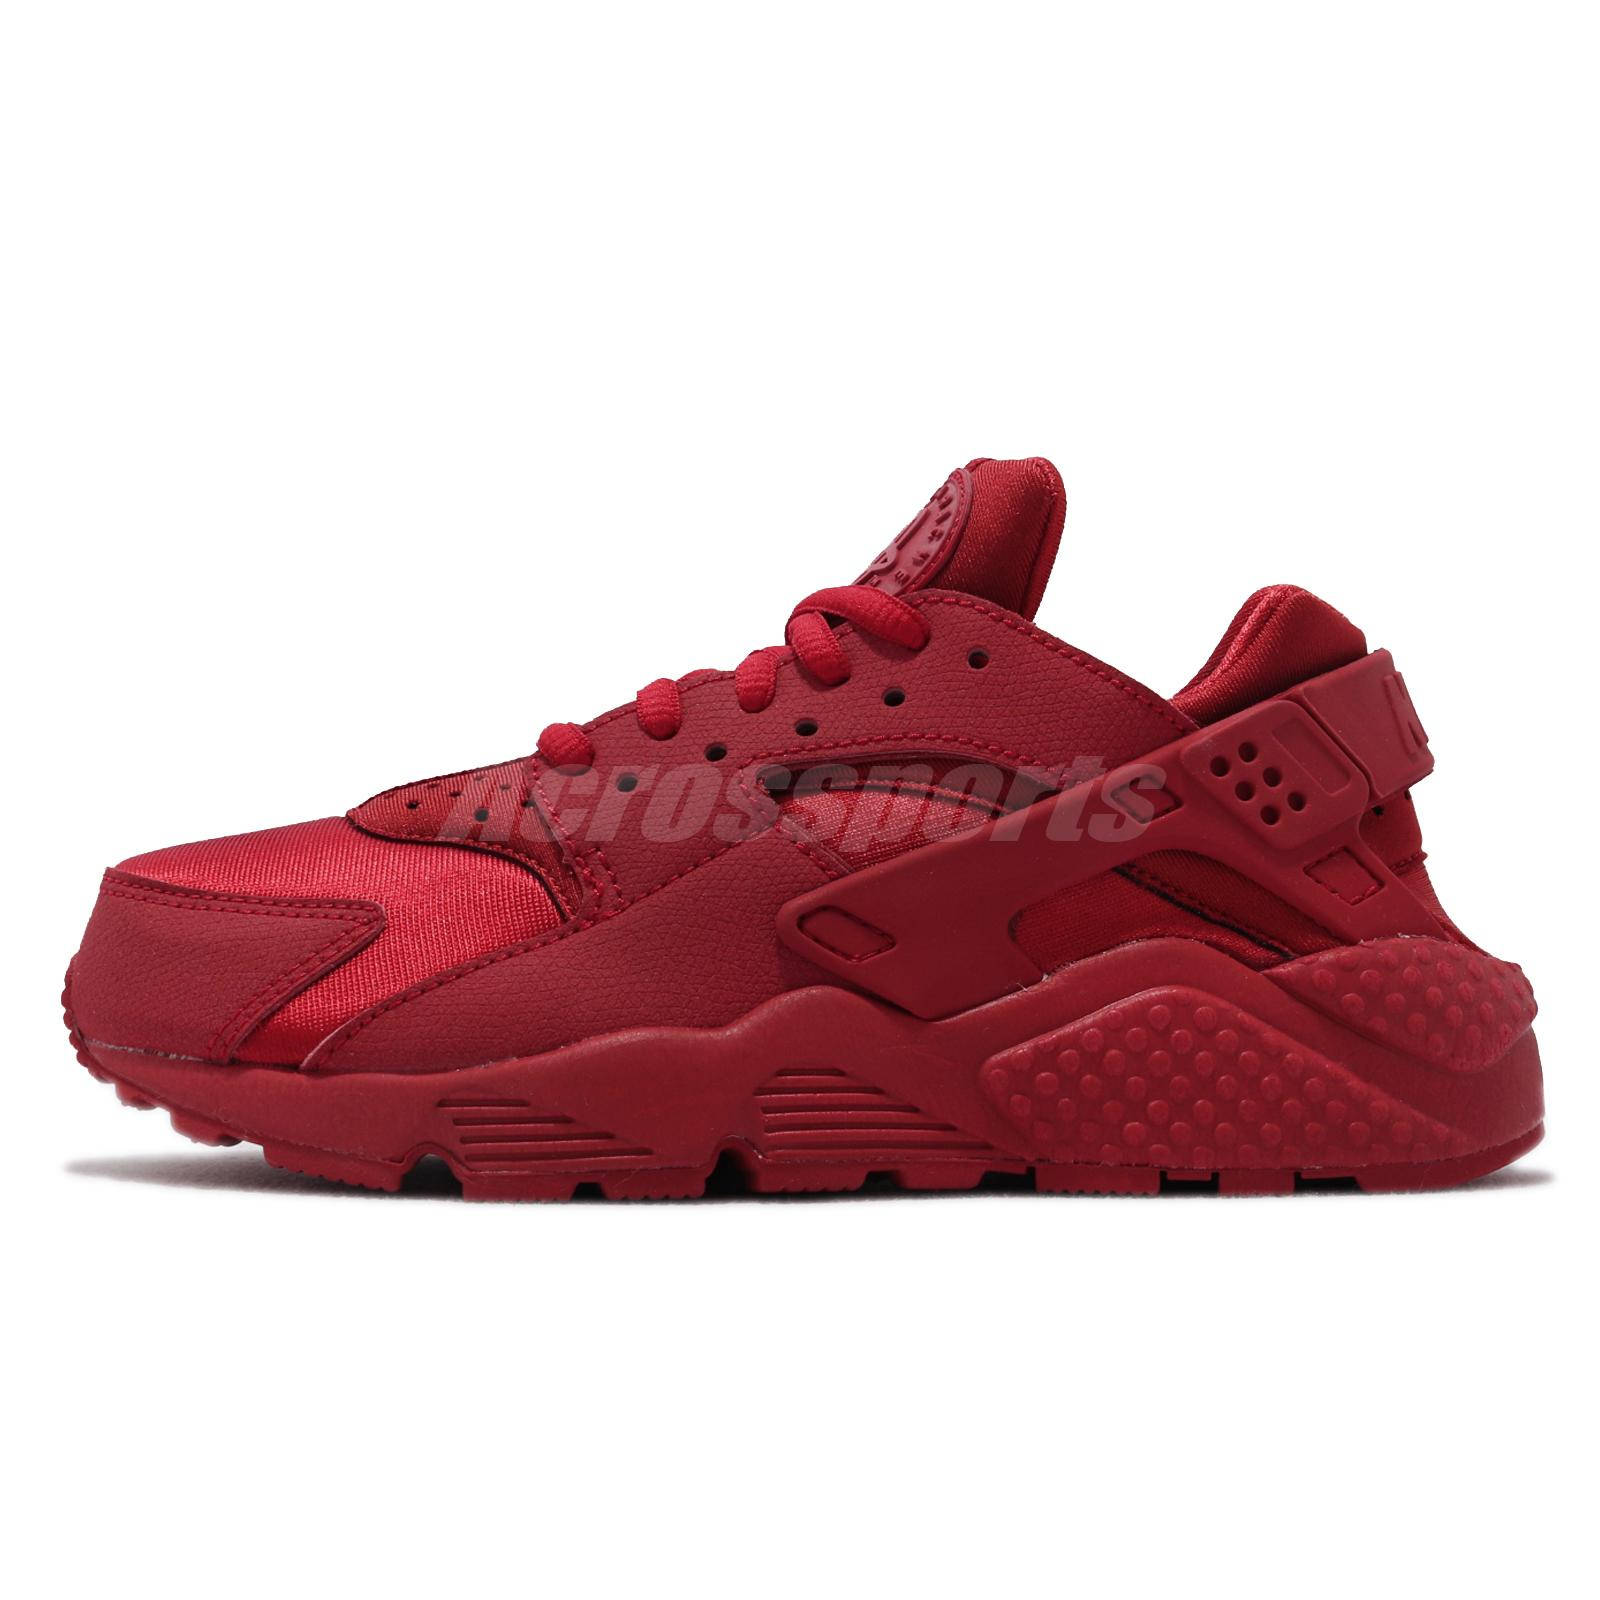 Wonderful Nike Shoes Red For Women Thenavyinncouk